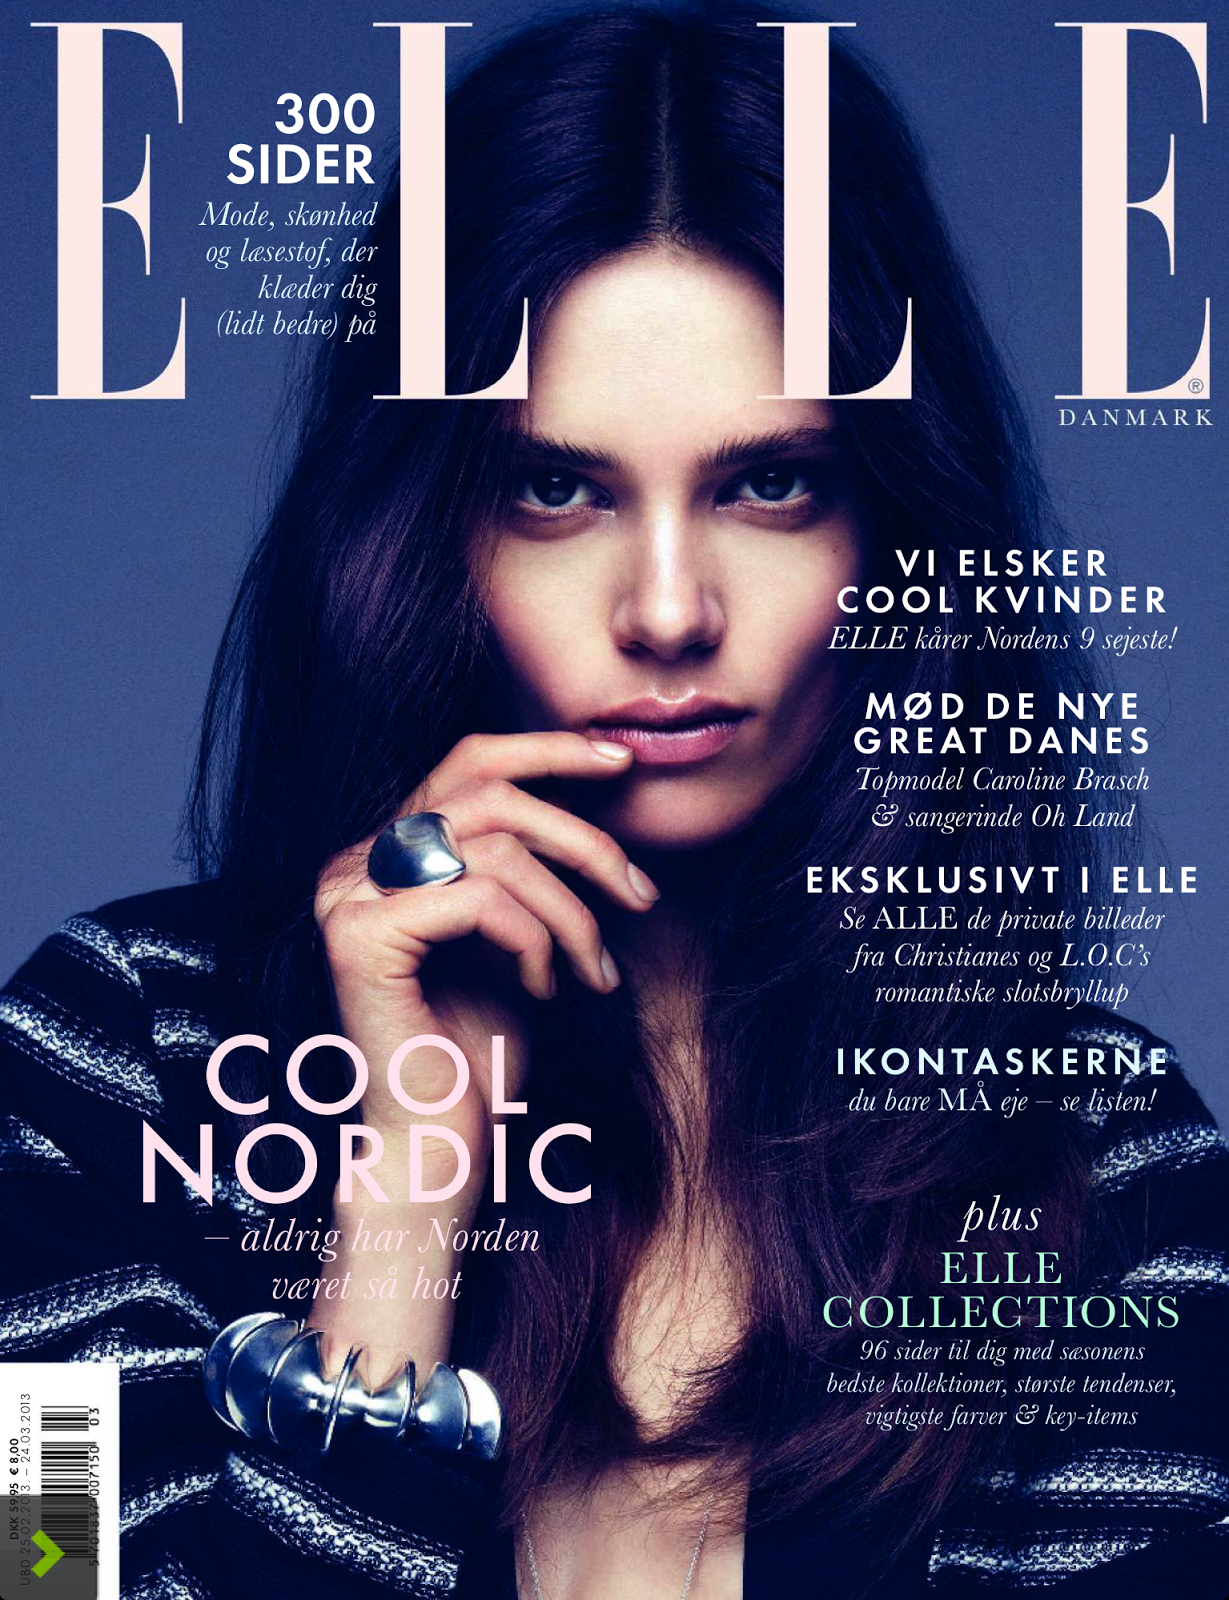 ELLE COVER & EDITORIALS